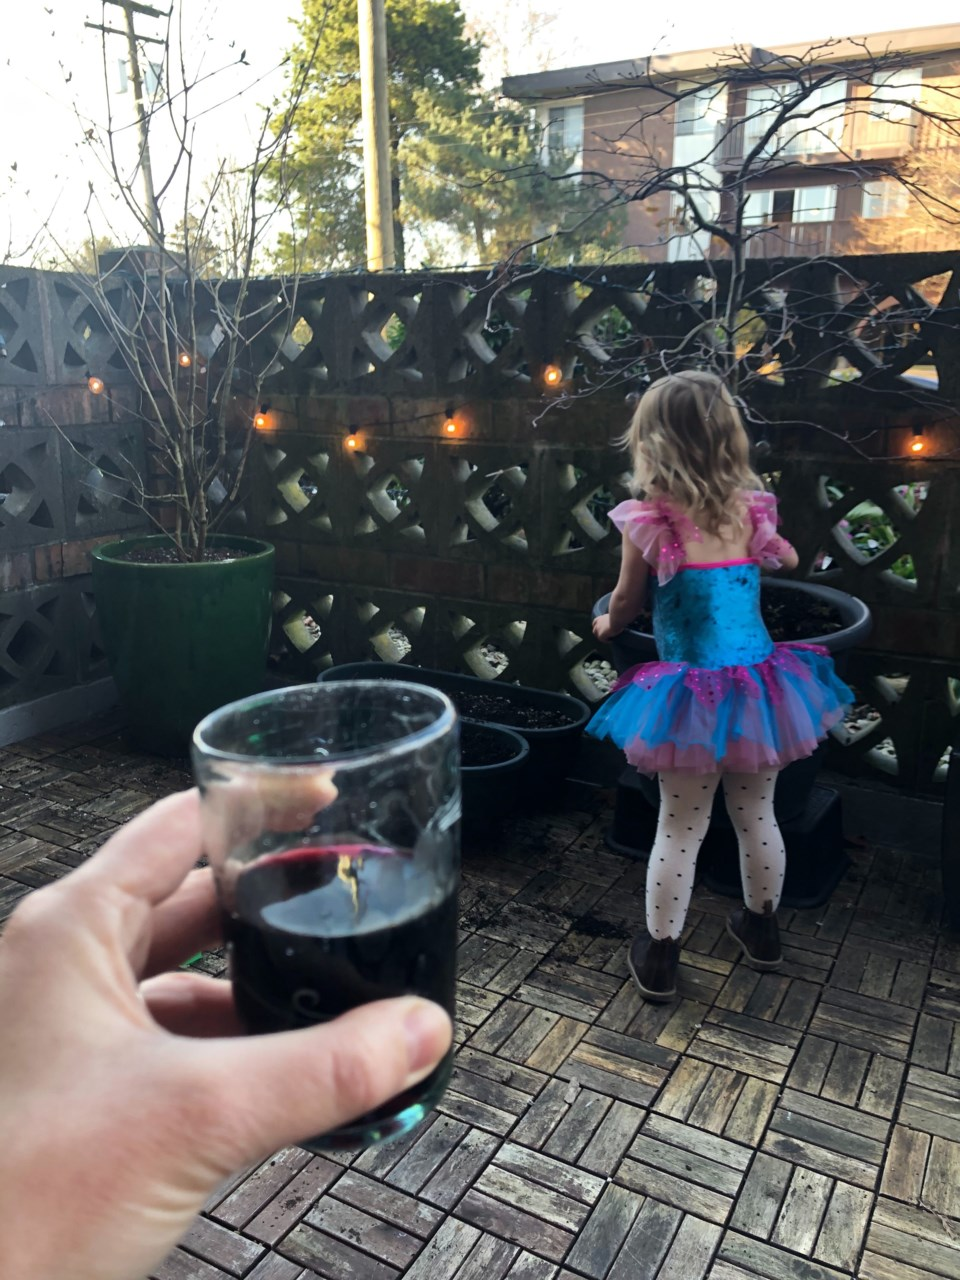 Jessica Kerr partakes/observes her daughter's patio activities. Photo Jessica Kerr